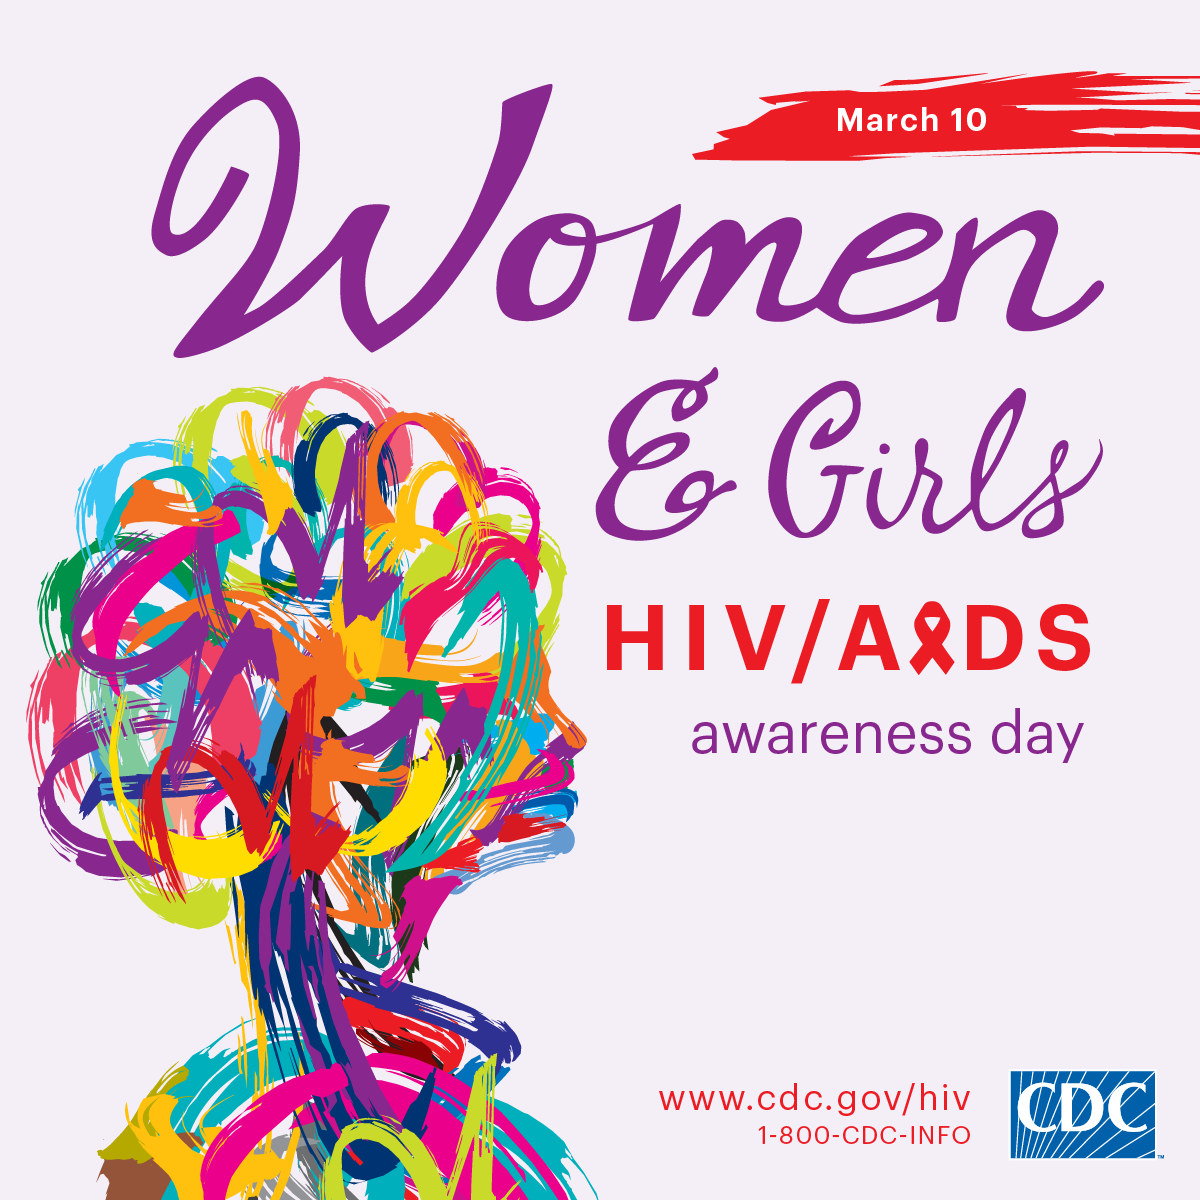 This Facebook profile graphic promotes National Women and Girls HIV/AIDS Awareness Day on May 10. For more information, visit www.cdc.gov/hiv.